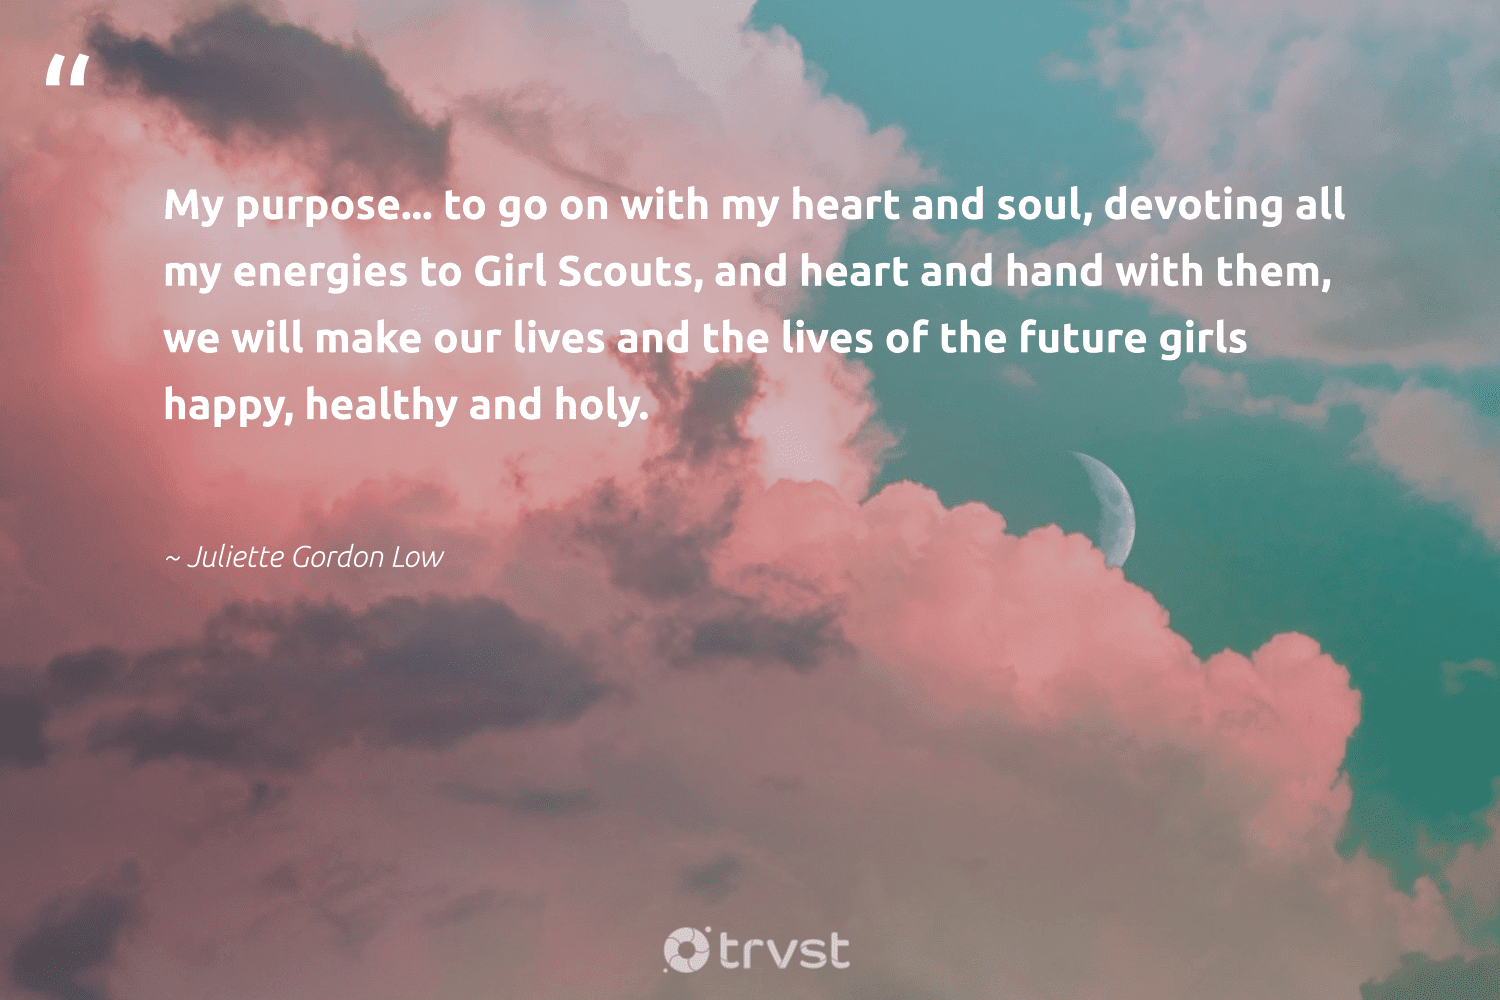 """""""My purpose... to go on with my heart and soul, devoting all my energies to Girl Scouts, and heart and hand with them, we will make our lives and the lives of the future girls happy, healthy and holy.""""  - Juliette Gordon Low #trvst #quotes #wellbeing #happy #healthy #purpose #wellness #health #mindset #dotherightthing #healthylife #begreat"""